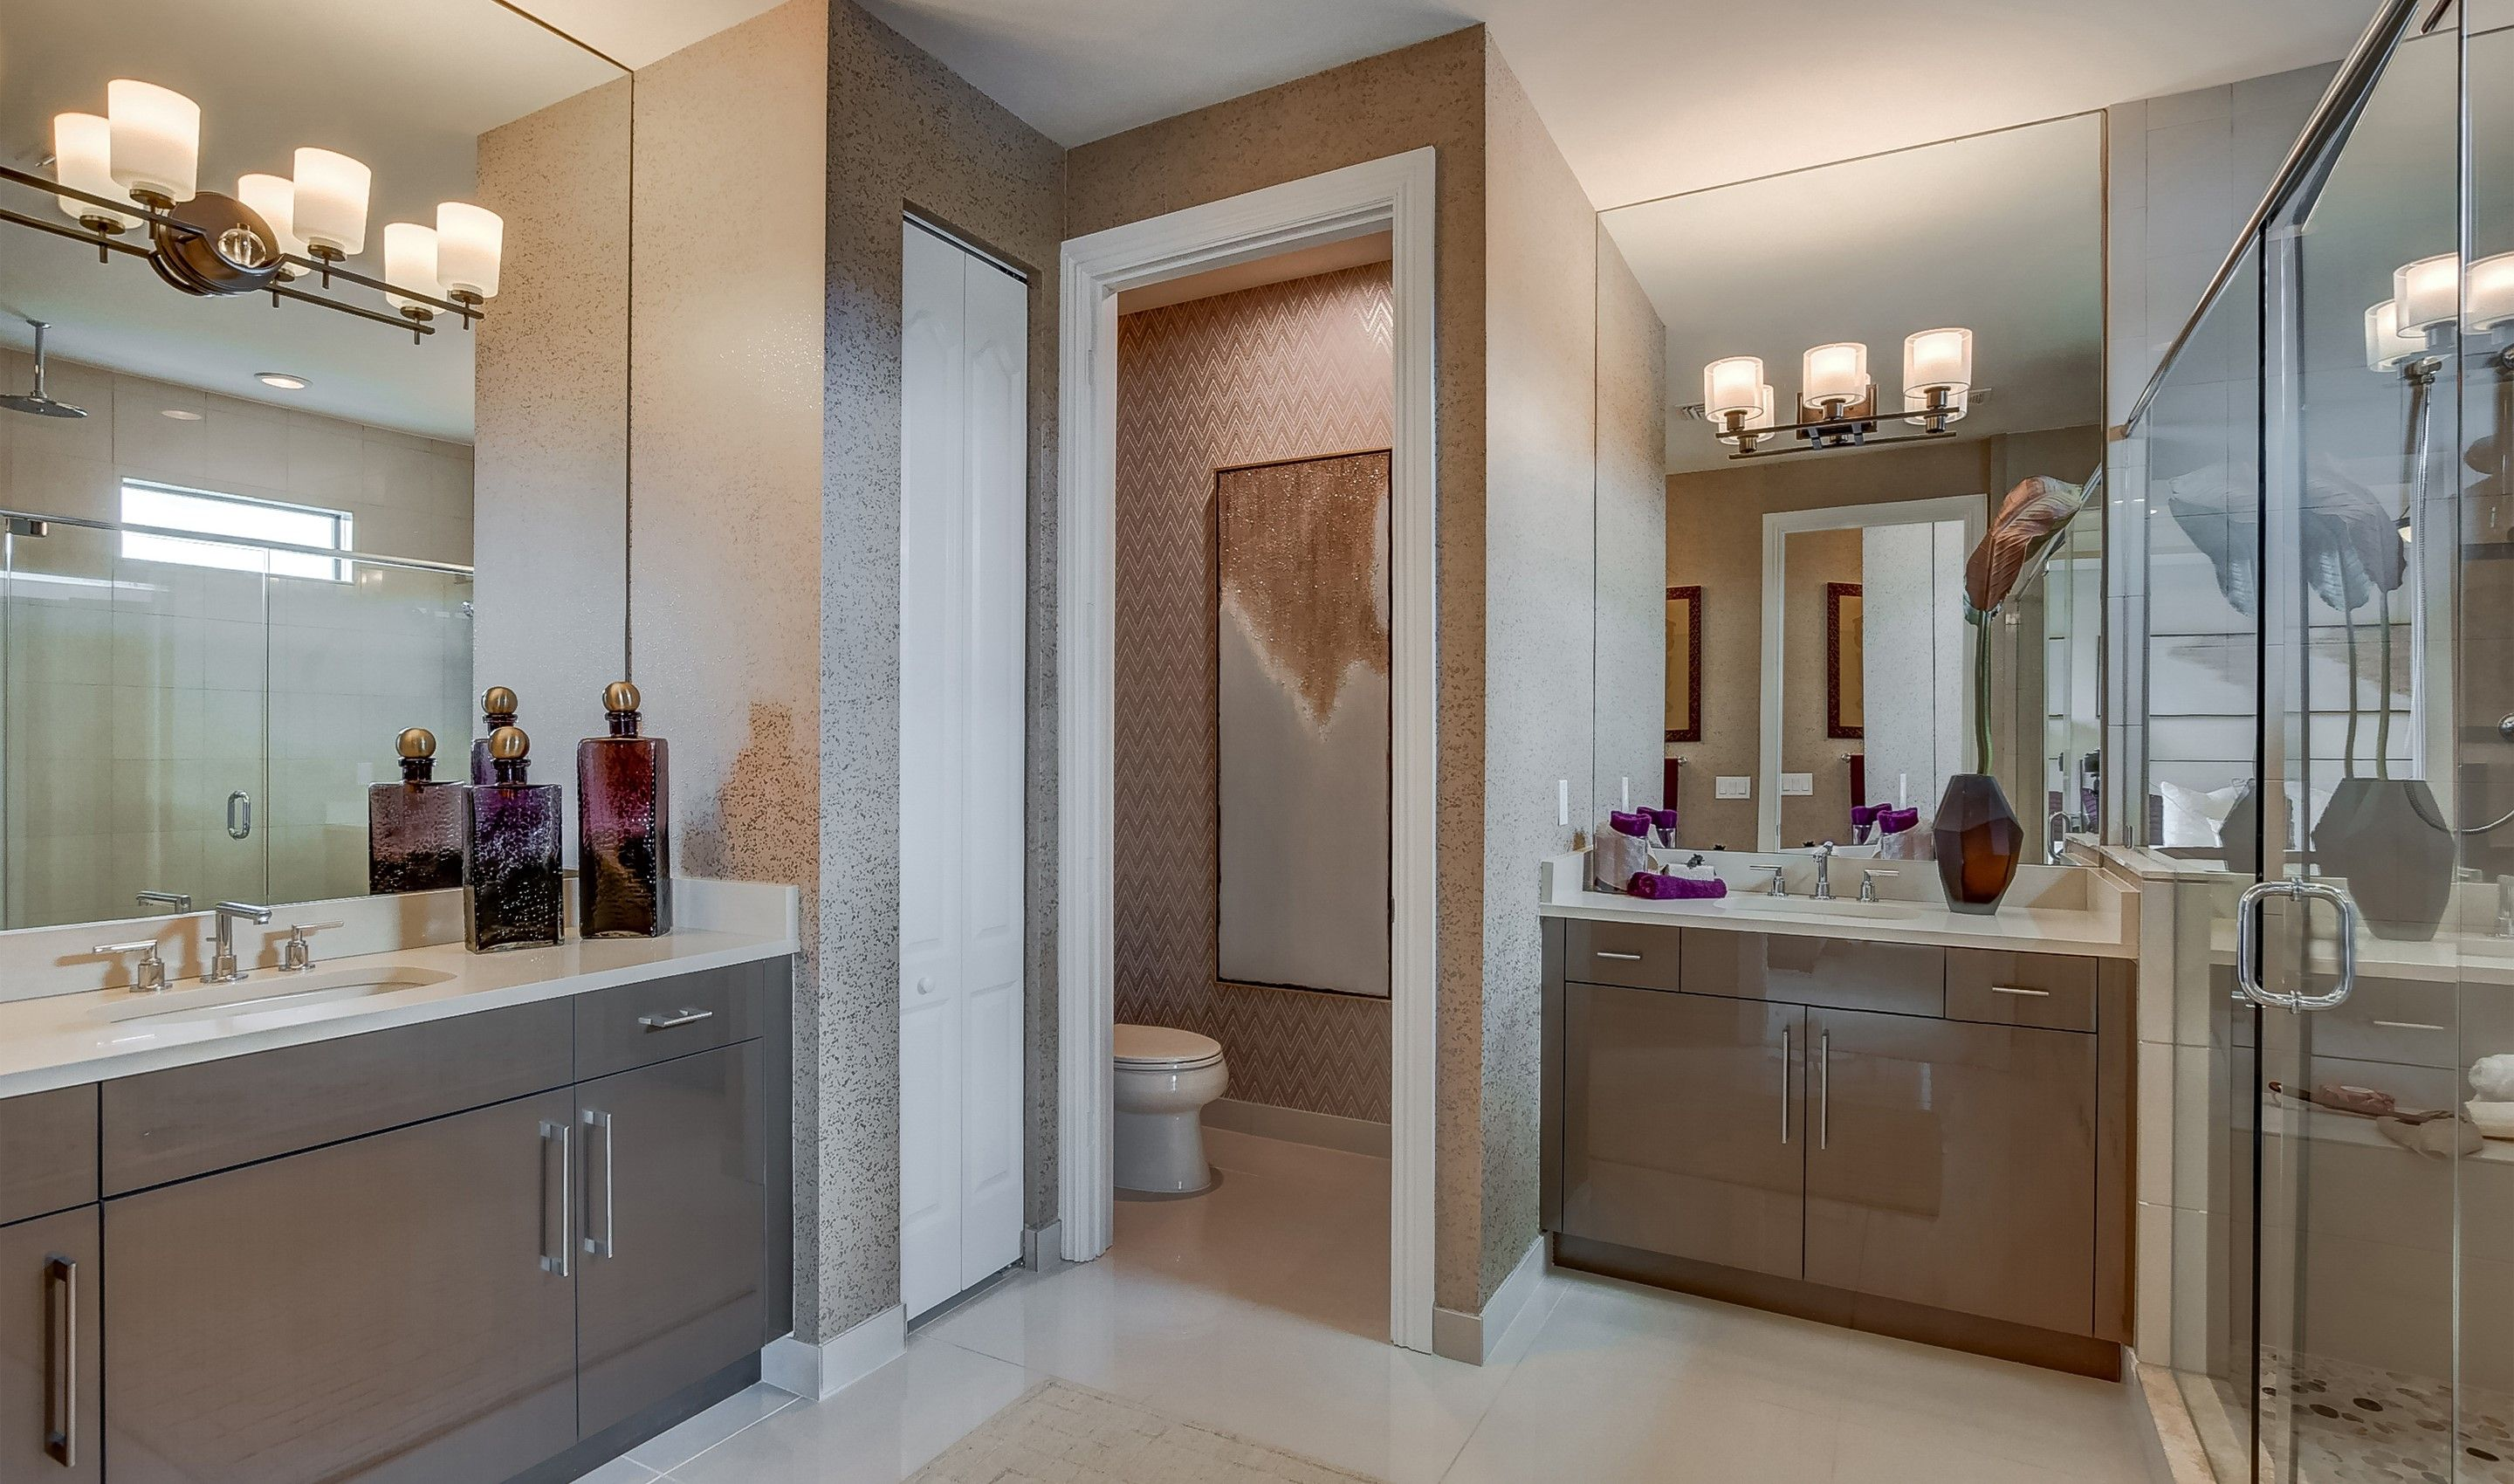 Bathroom featured in the Bonaire II By K. Hovnanian® Homes in Palm Beach County, FL